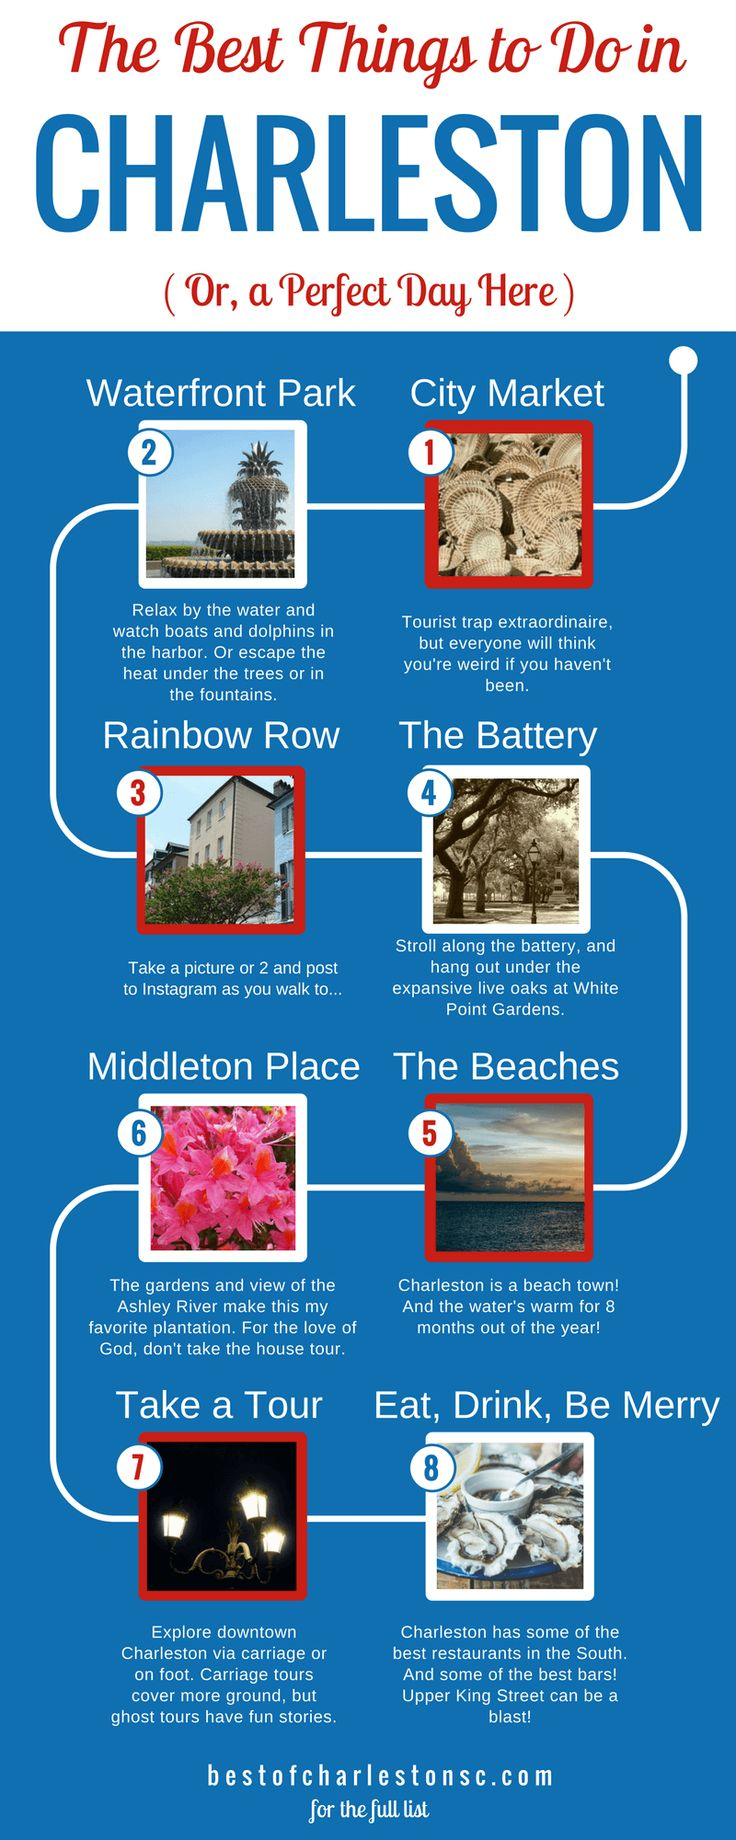 A guide to a perfect day in Charleston, South Carolina. Start with downtown attractions like: the Historic Charleston City Market, Waterfront Park, Rainbow Row, and the Battery. Then head to Charleston beaches like Folly Beach or Sullivan's Island before heading to one of the Charleston plantations, like Middleton Place. Afterwards, take a tour back downtown (either carriage ride or ghost tour) before ending the night with a fantastic meal and a drink or two on King Street.